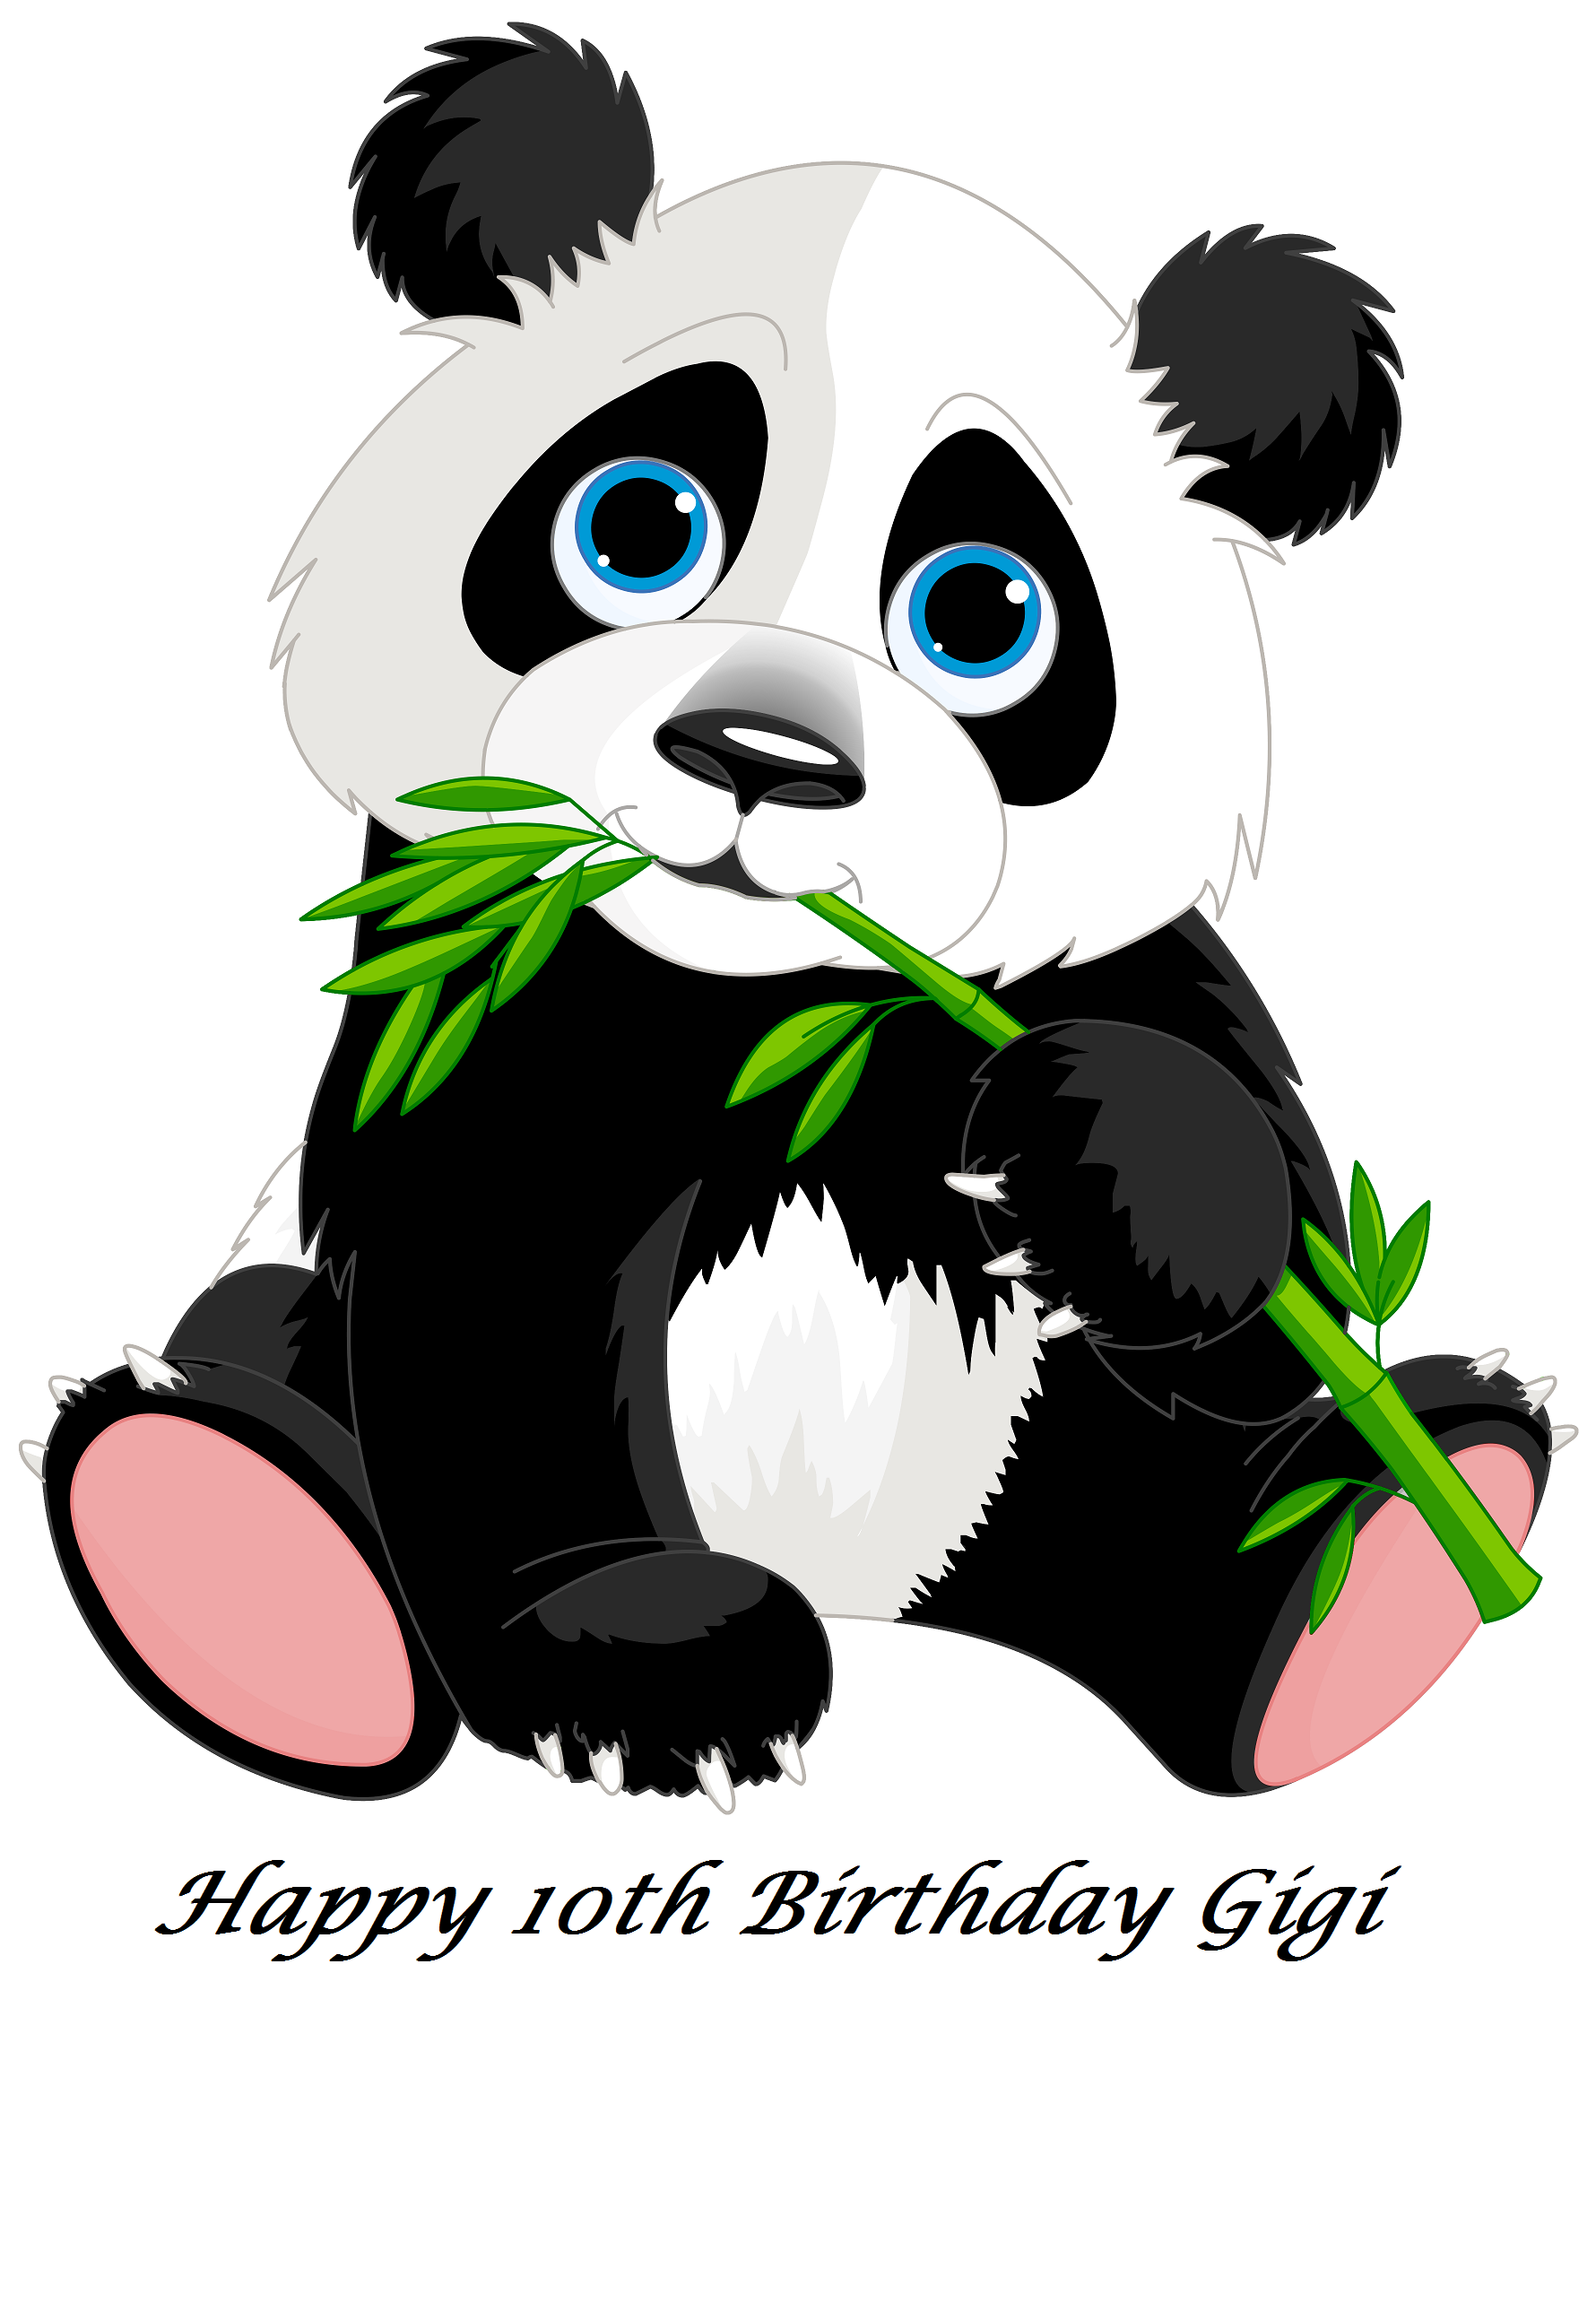 Best Of Cute Baby Adorable Panda Wallpaper Red Panda Cool Wallpapers Cartoon Images Pictures 7 August 2021